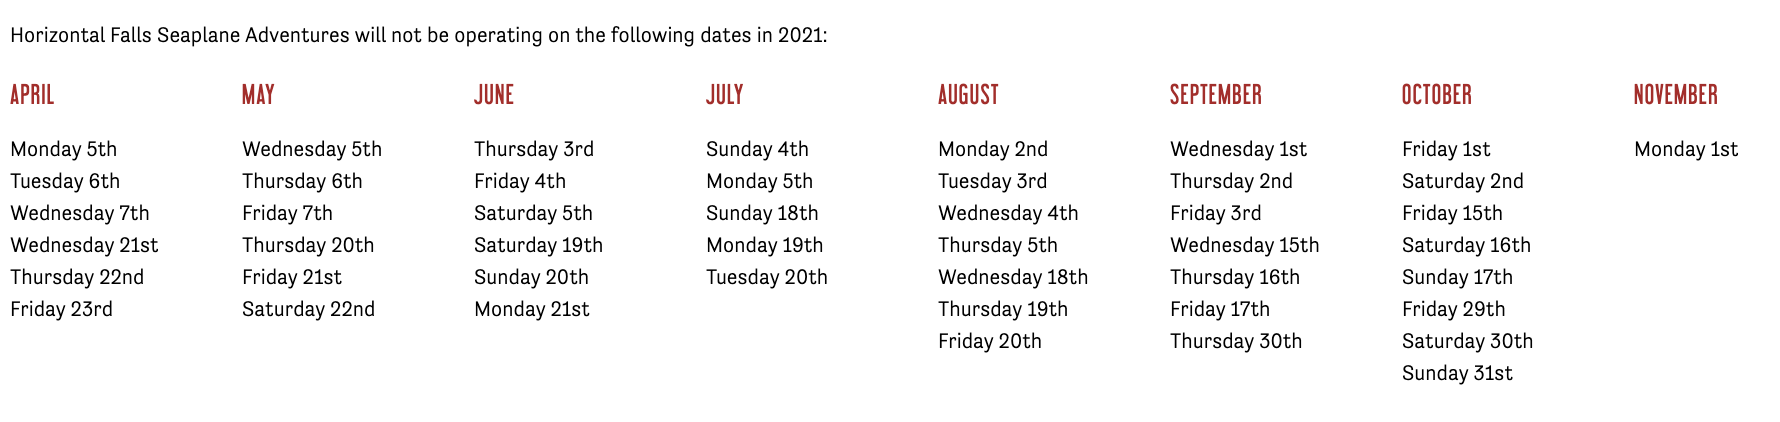 NEAP TIDE DATES 2021